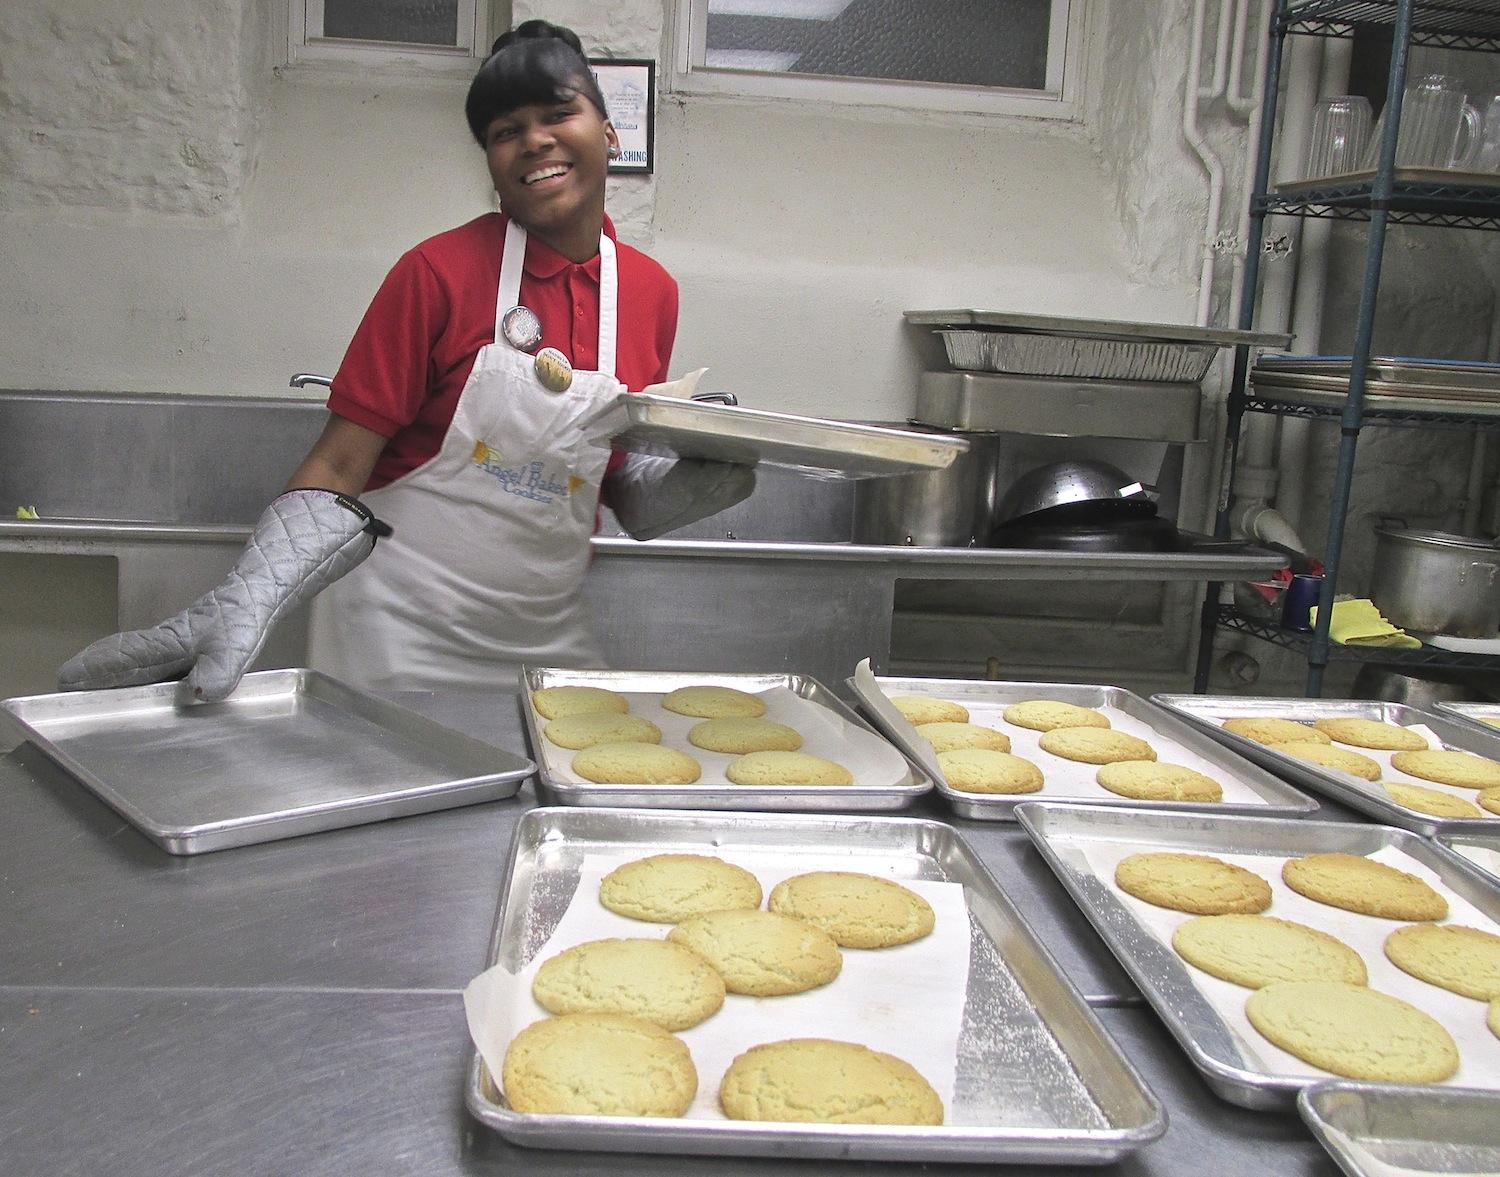 Annitta Frost, 17, Says She Loves Her Job. The Cookies Are Baked In  Convection Ovens In The Kitchen Of Saint Teresa And Bridget Catholic Church.